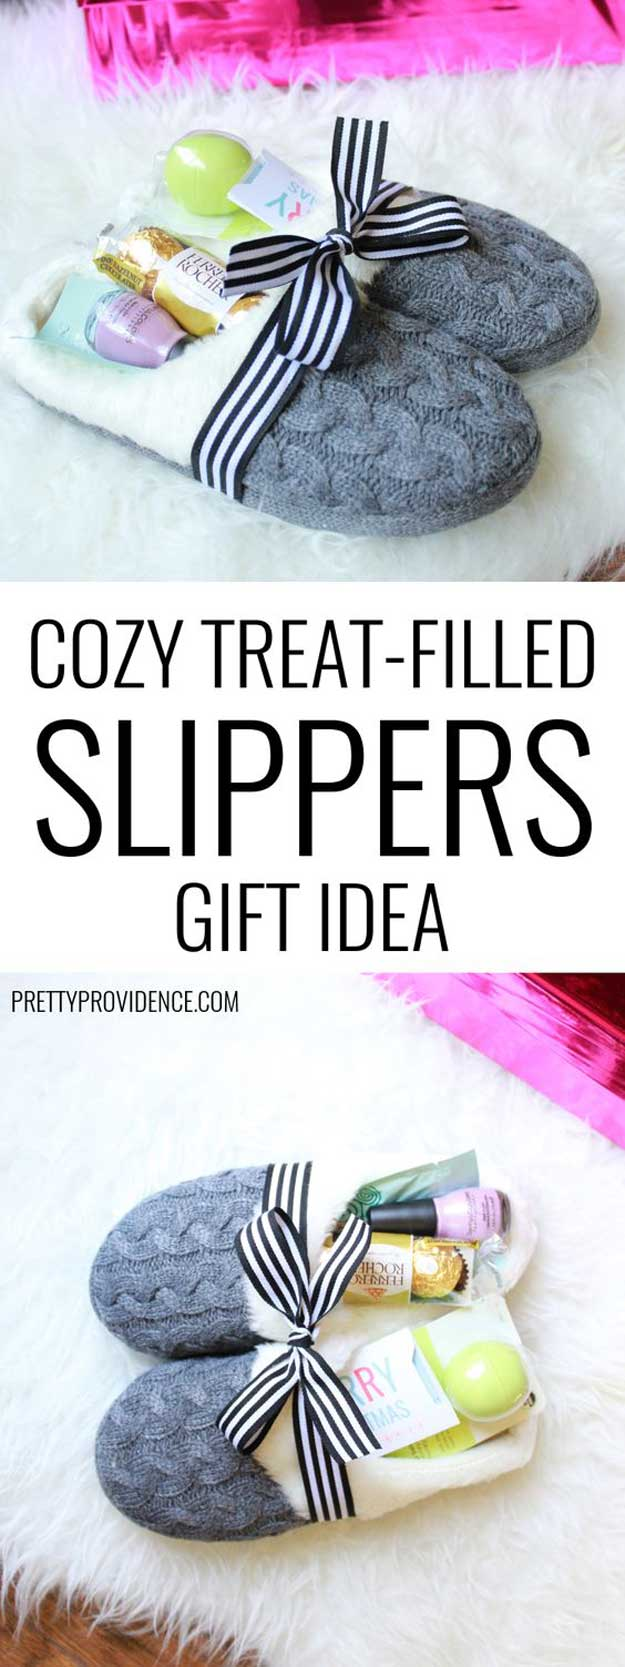 Cute Gifts To Make For Her Diy Ready